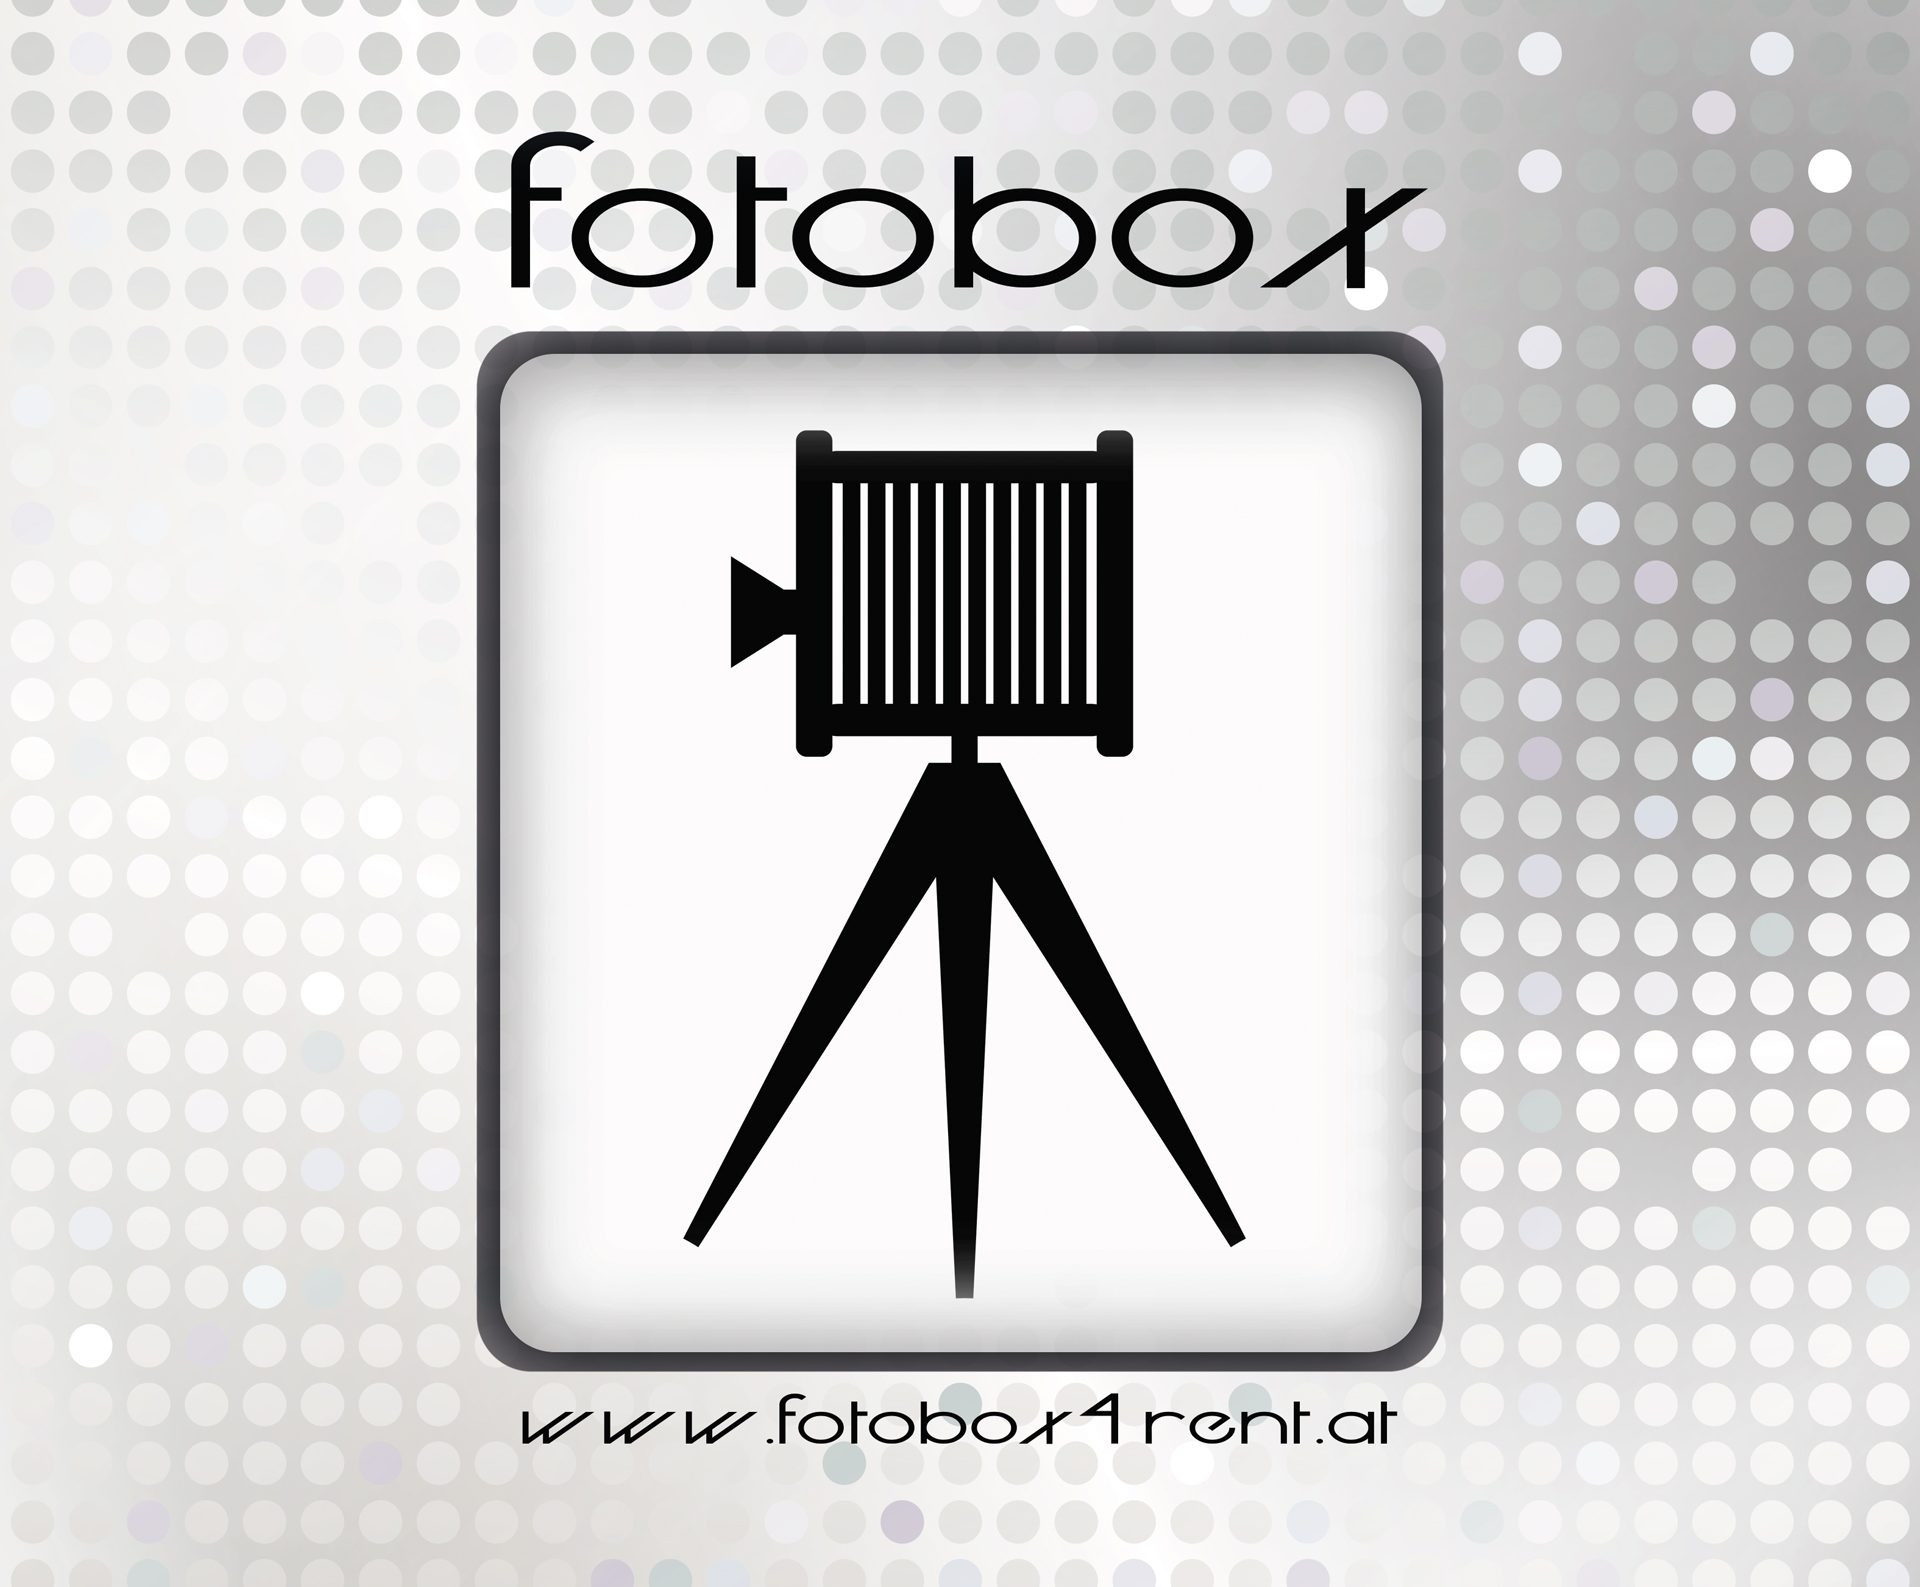 fotobox4rent